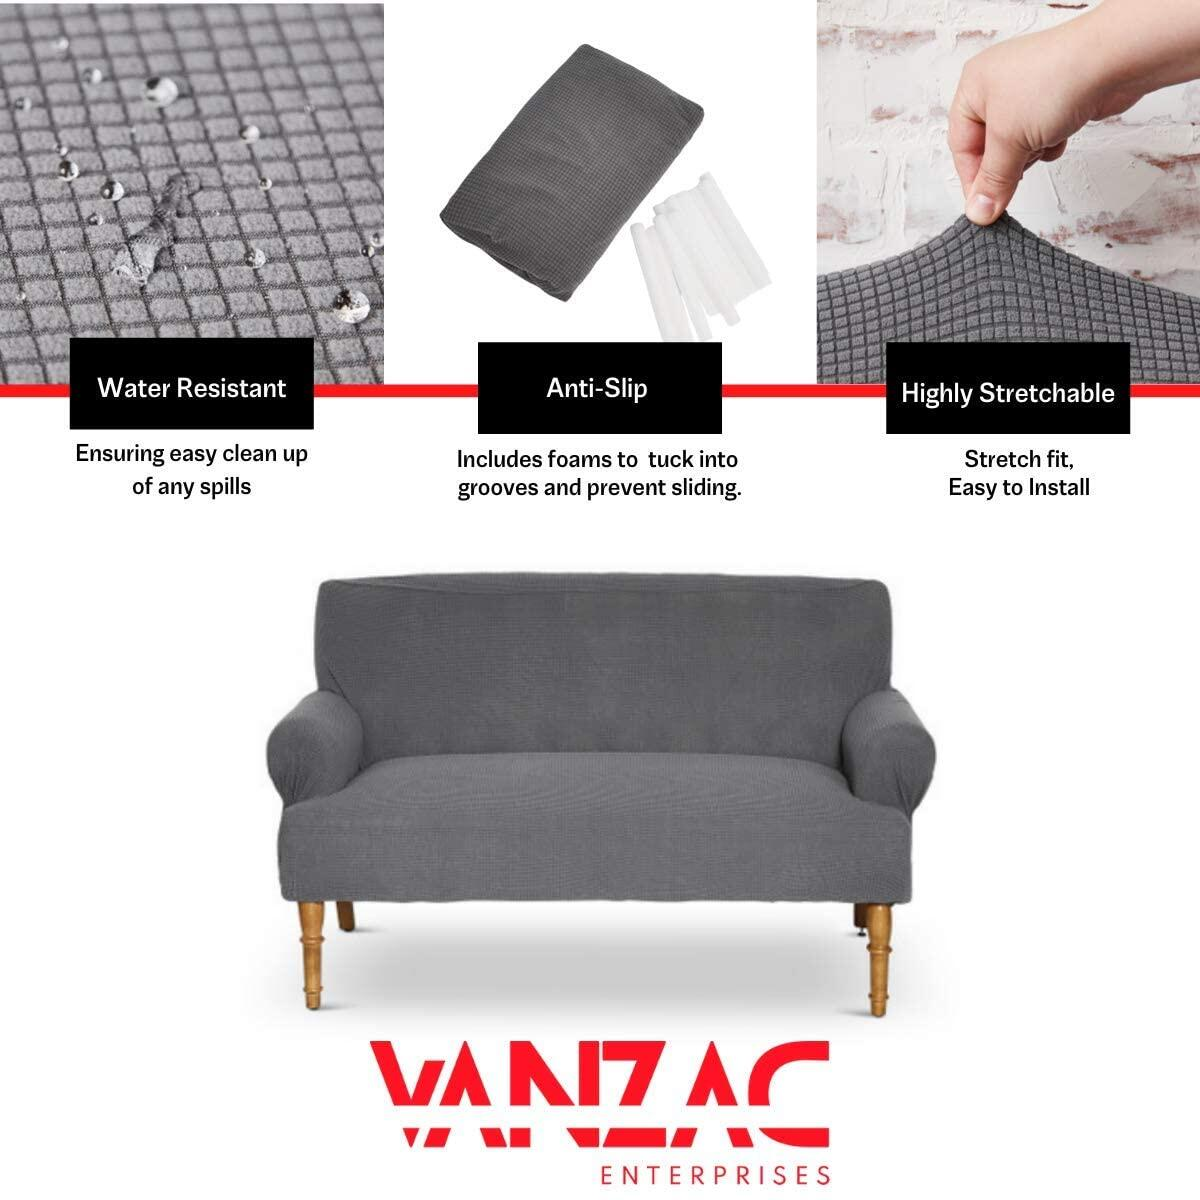 Vanzac | Sofa Slipcover | One Piece | Water Resistant Material | Mesh Couch Protector Cover | Jacquard Stretch Fabric | Loveseat Protection | Furniture Coverings